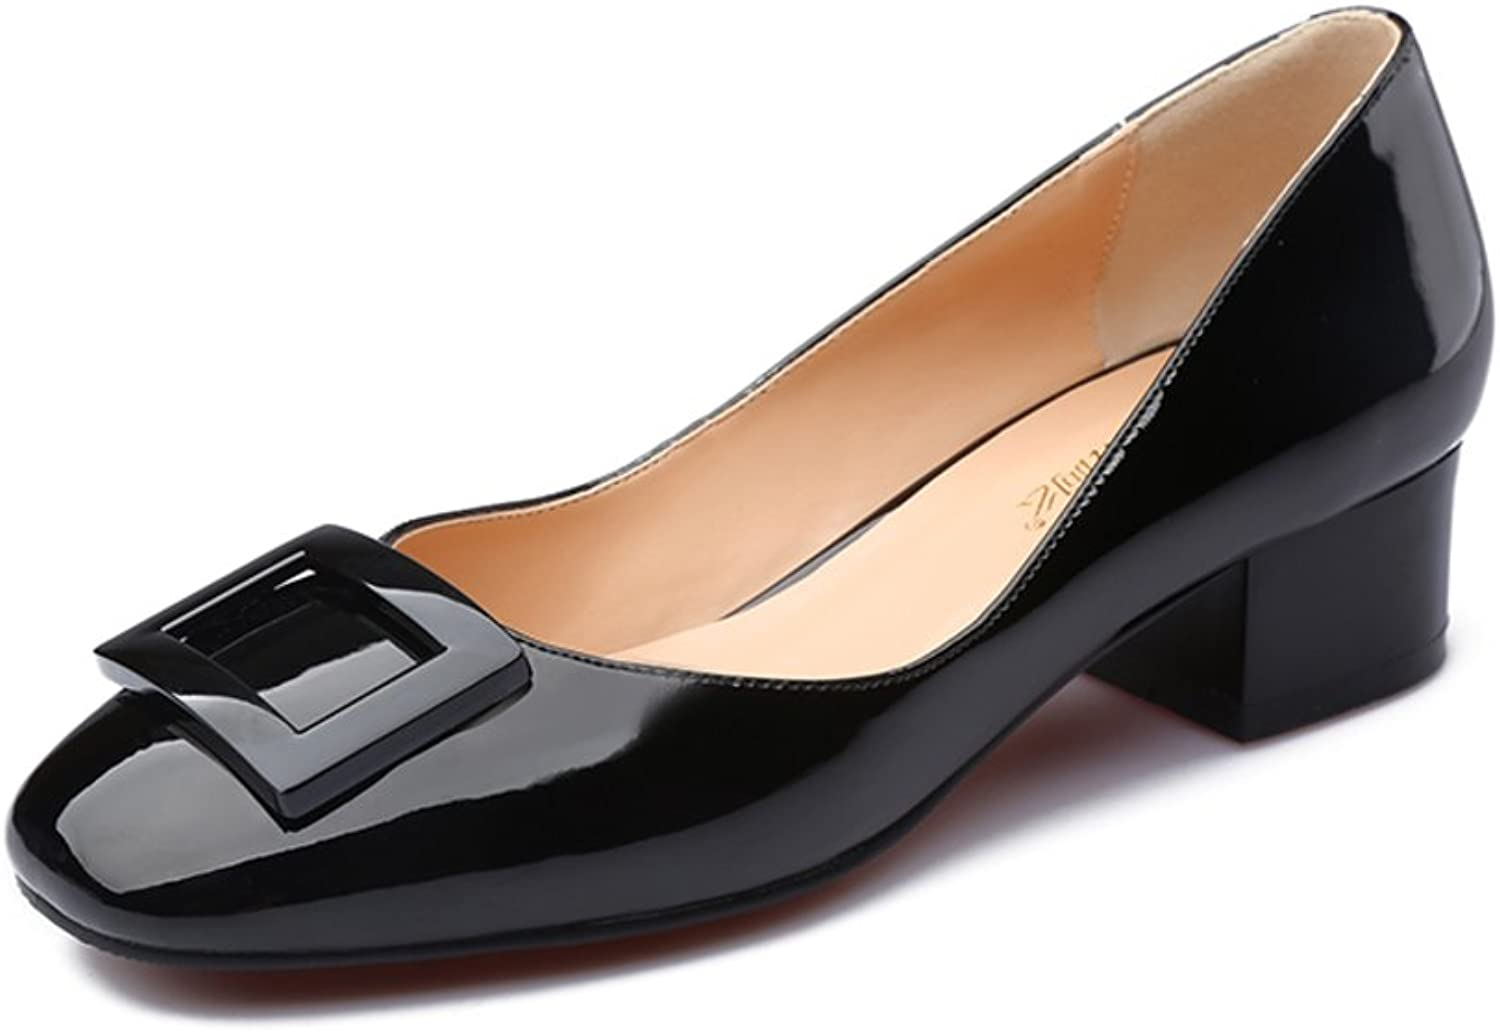 Huhuj Patent leather shoes fall trend geblackus deduction Comfortable thick with high-heeled shoes round shallow mouth